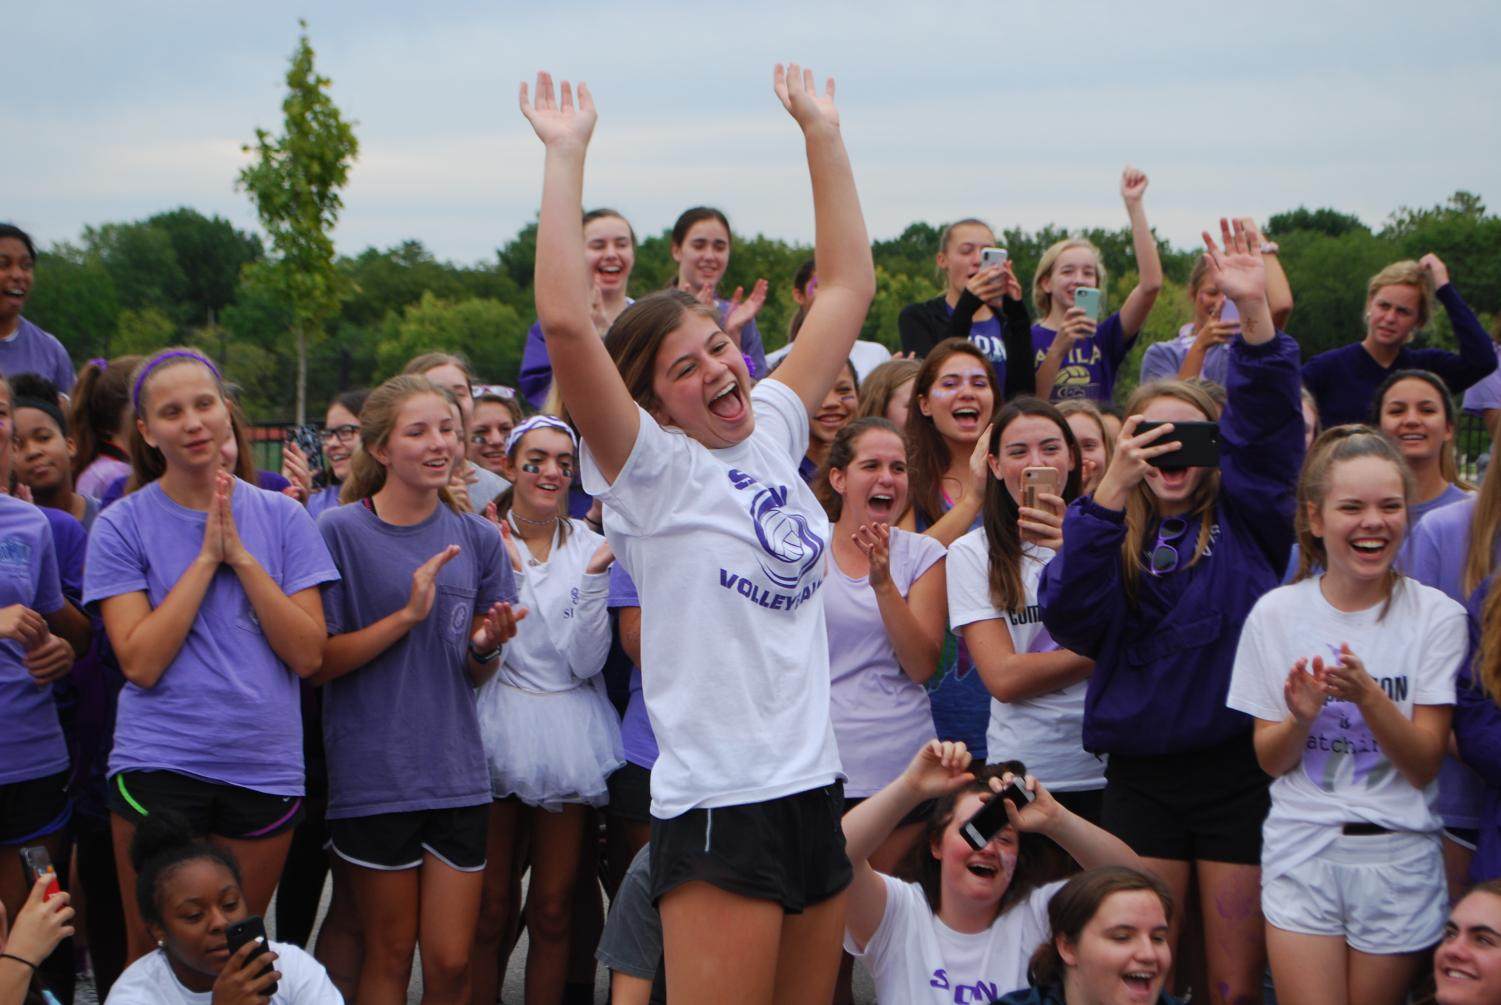 Junior Brynna Dow dances at last year's field day Sept. 23, 2018. This year's spirit week is Sept. 9 through Sept. 13. Field day is Friday, Sept. 13 following a half-day of classes.